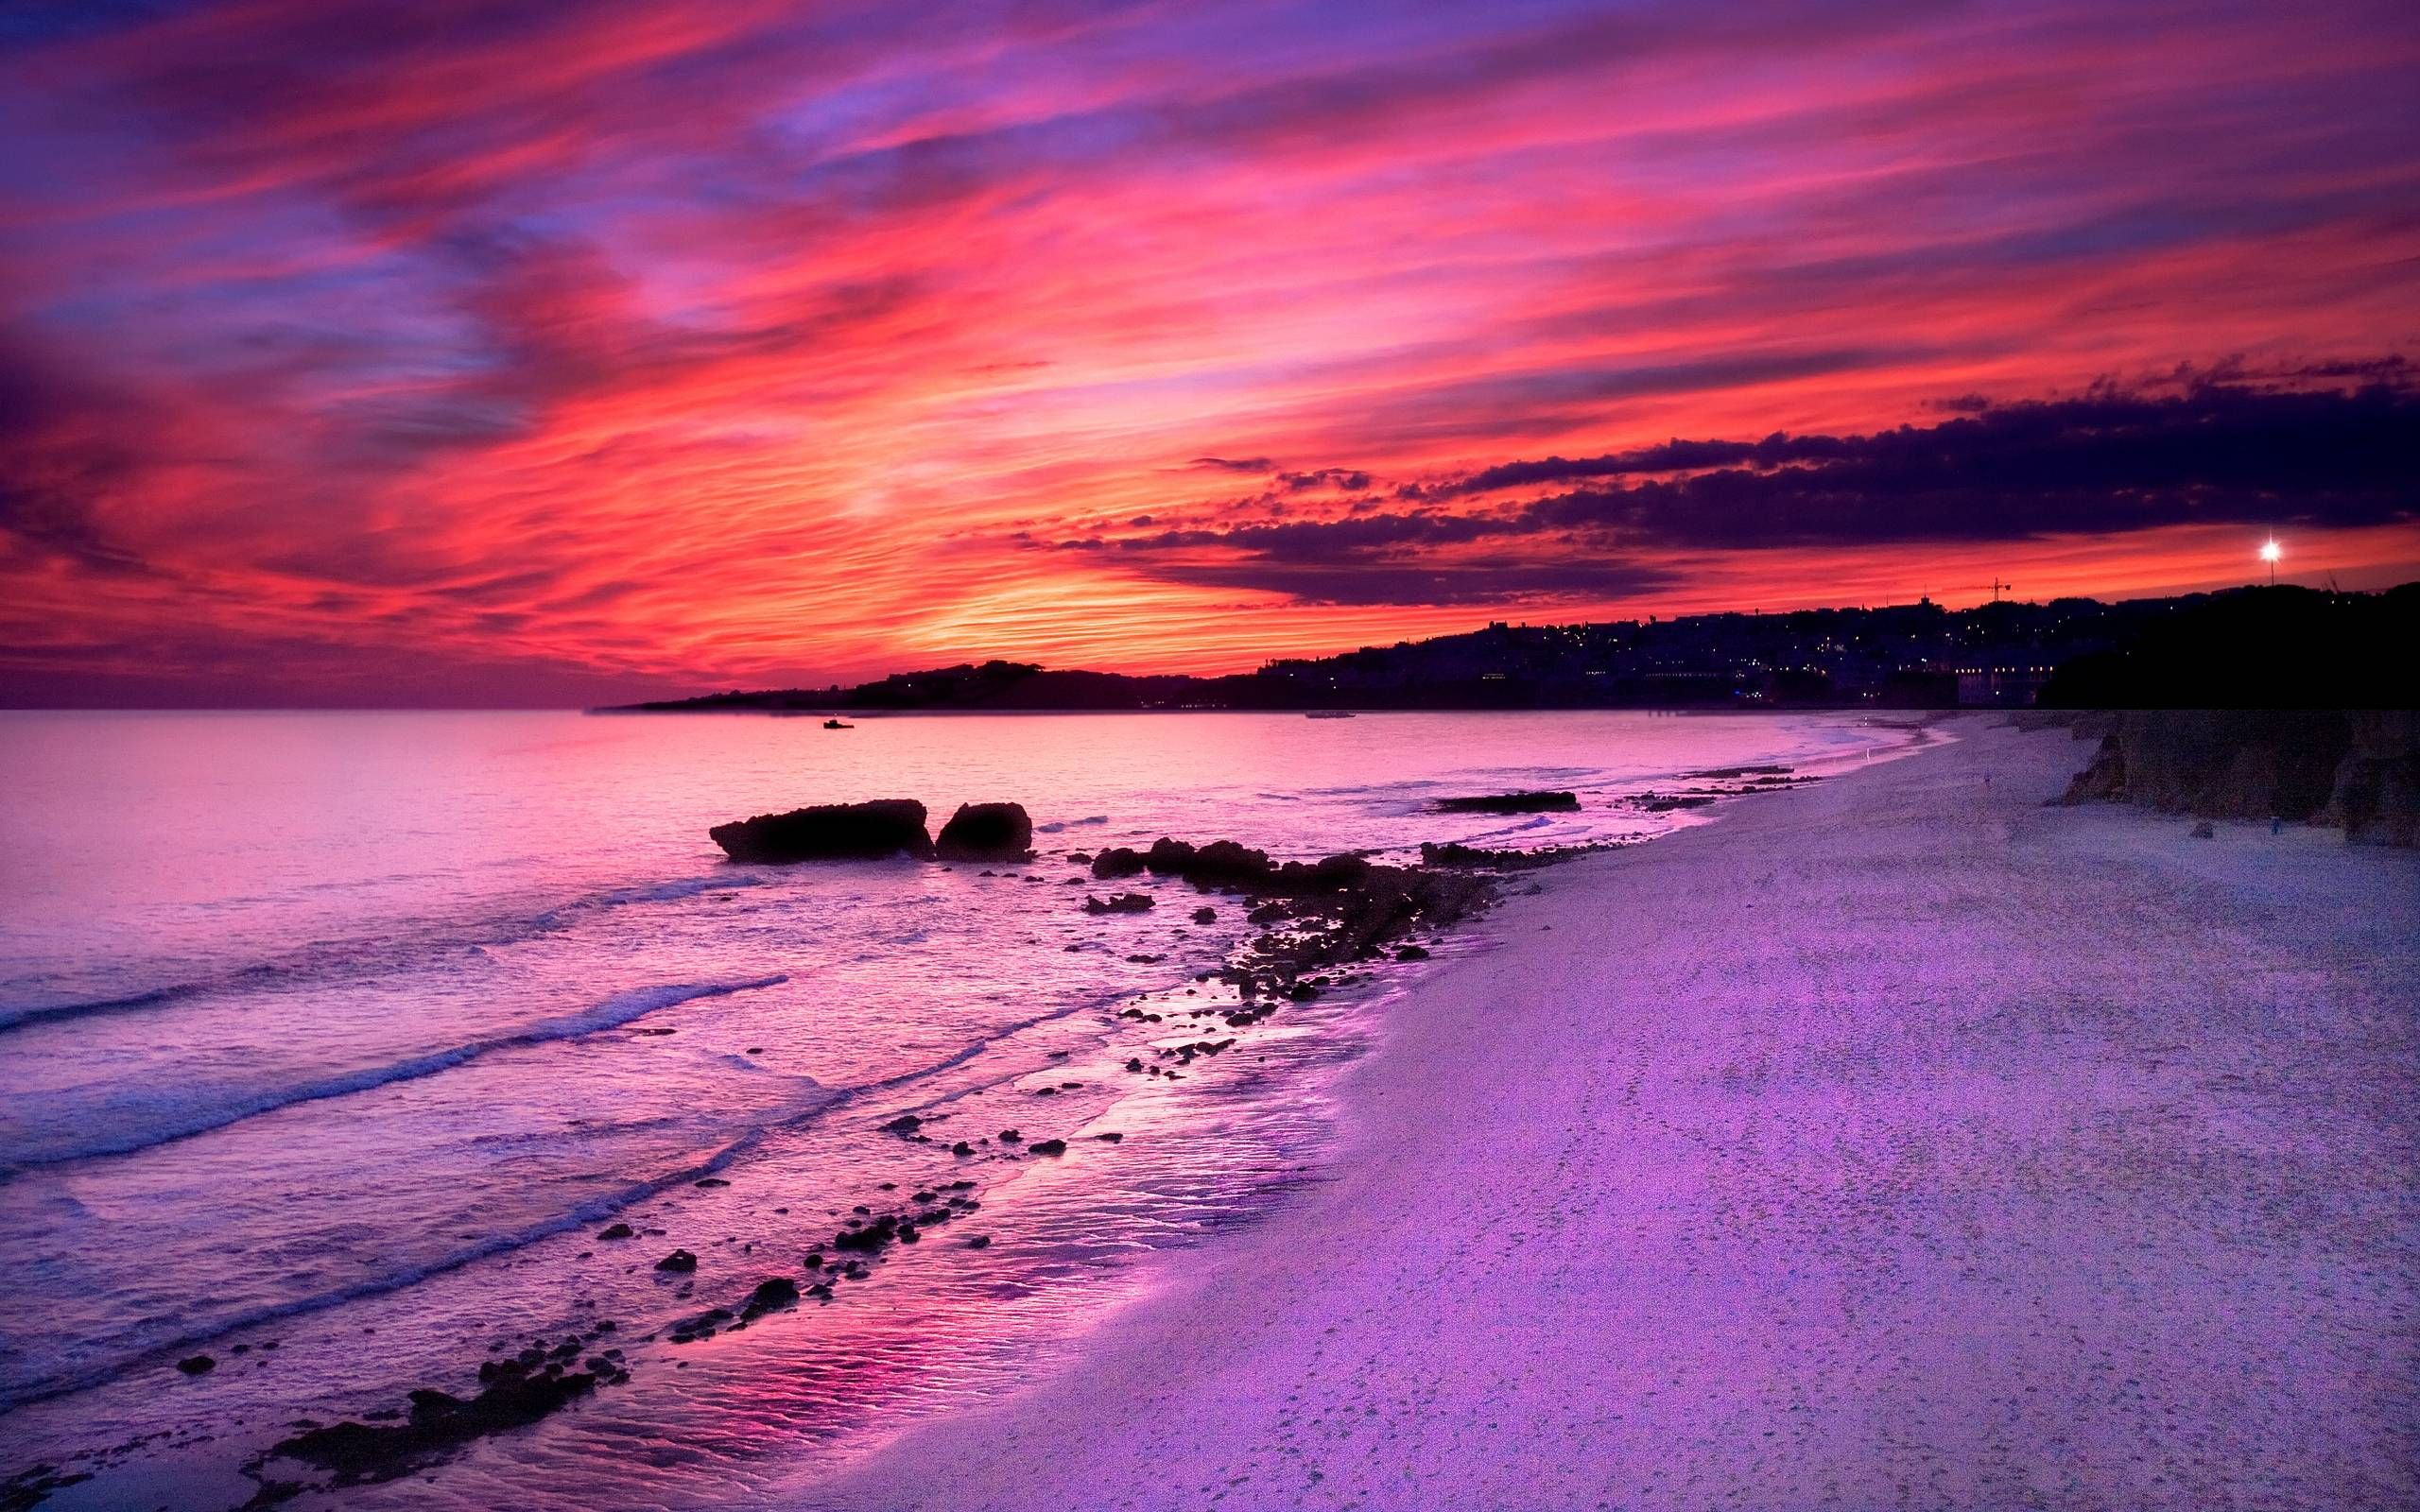 Purple Sunset Wallpapers Wallpaper wallpapers Pinterest Pink